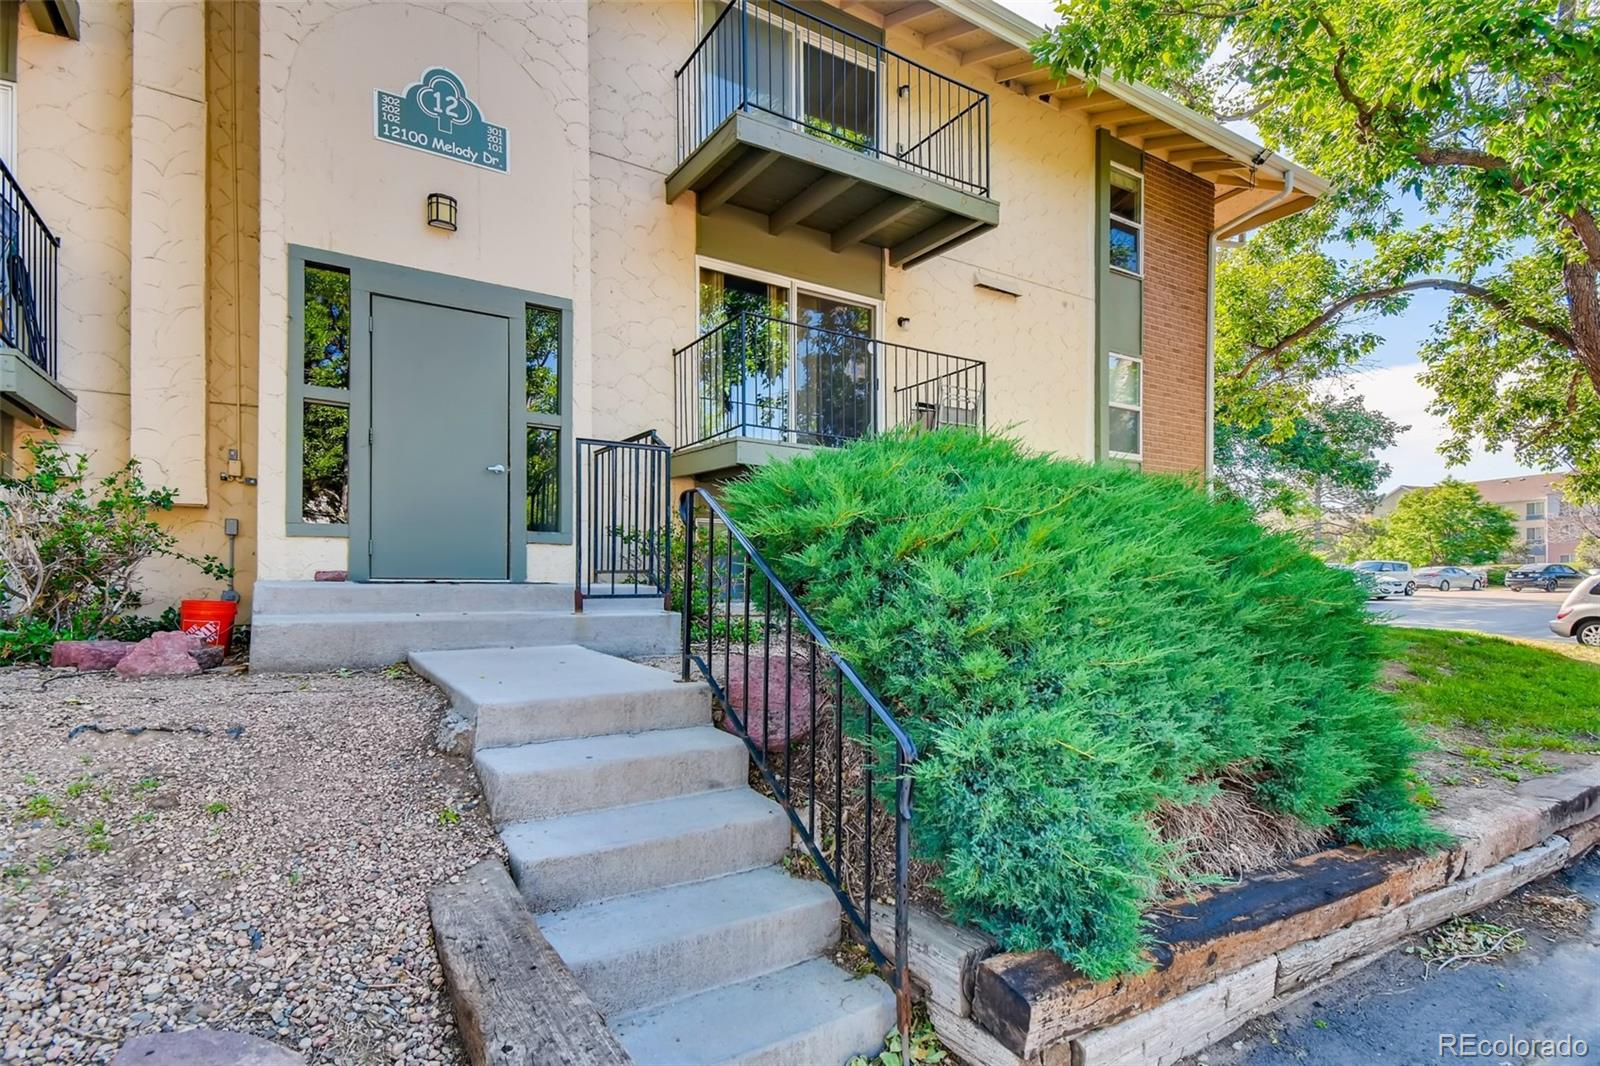 MLS# 4354857 - 12100 Melody Drive #301, Westminster, CO 80234